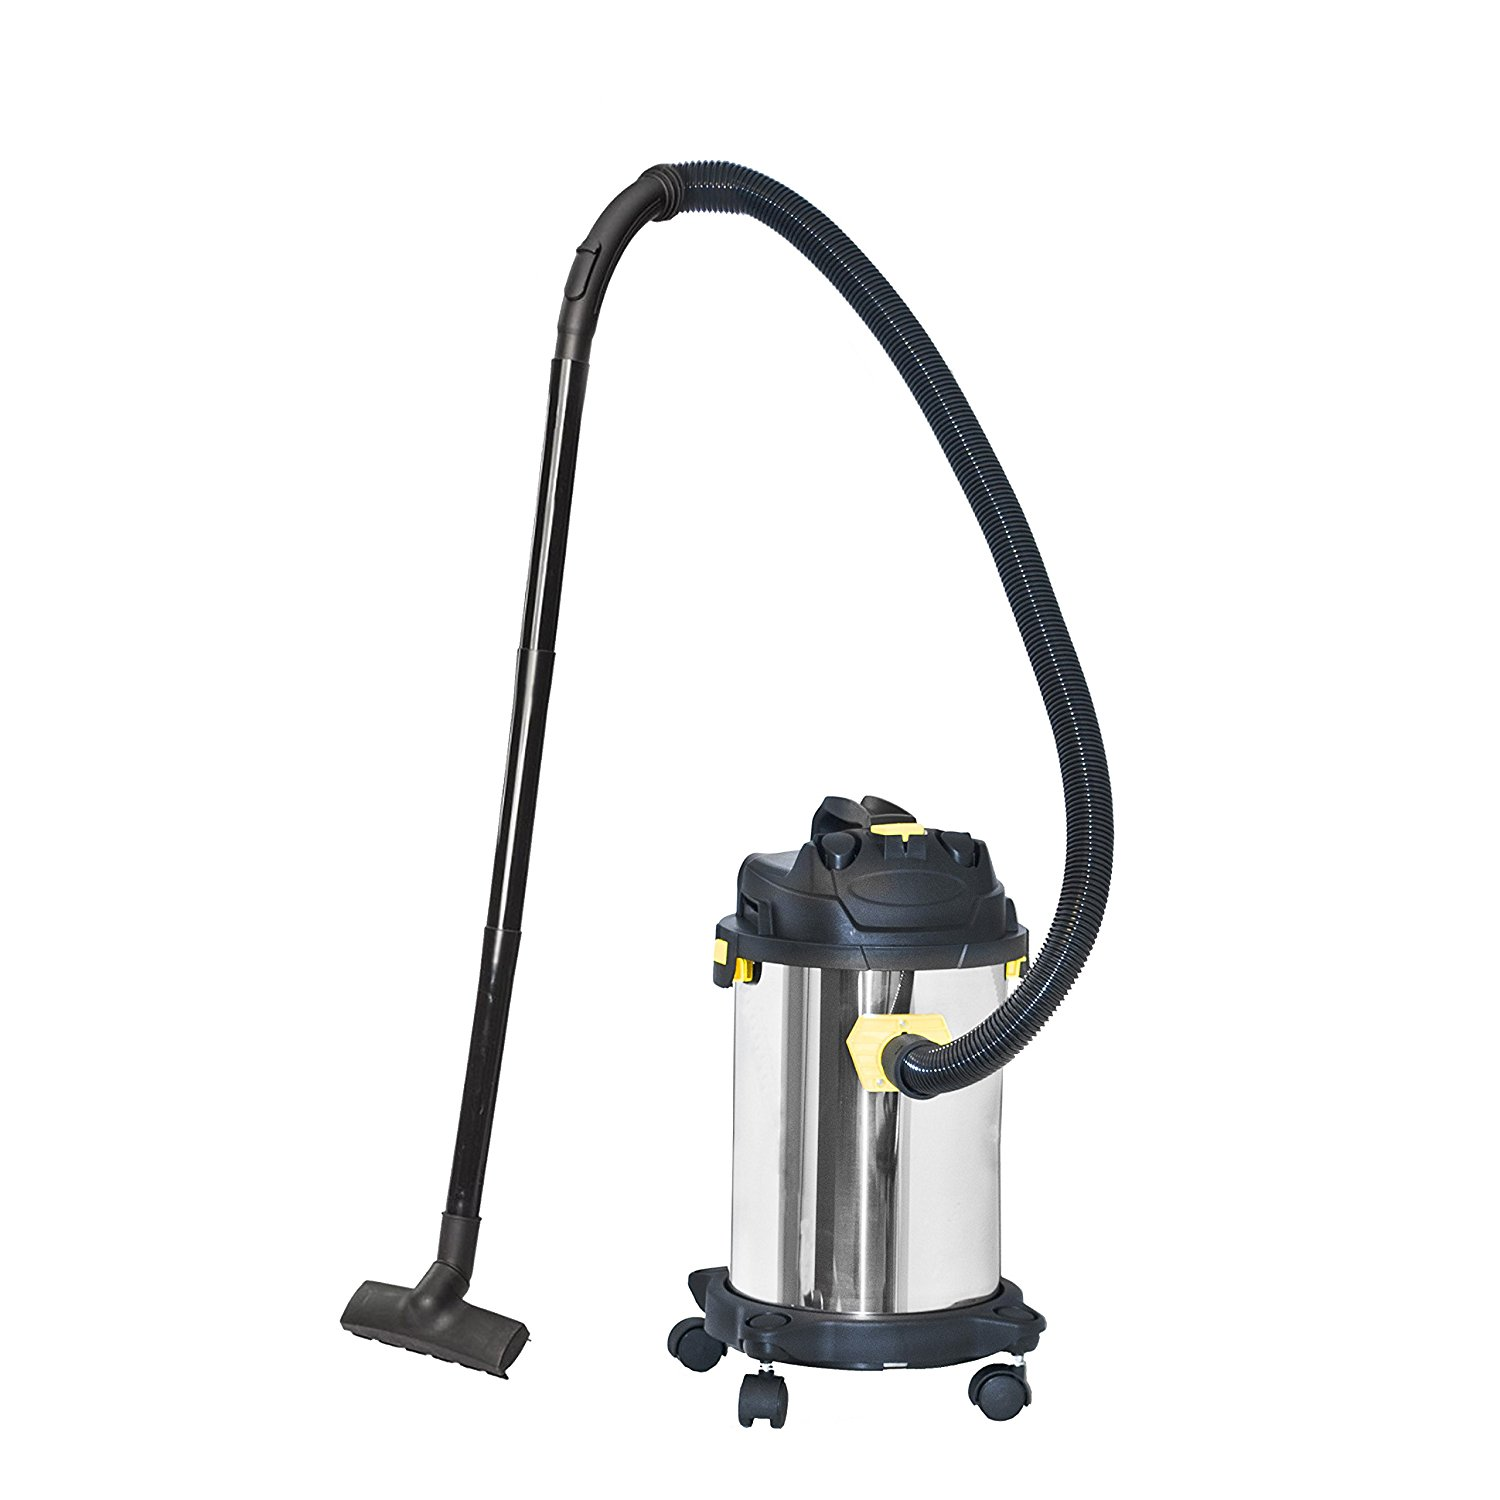 VWD620S Portable Heavyduty Wet and Dry Vacuum/Blower Cleaner